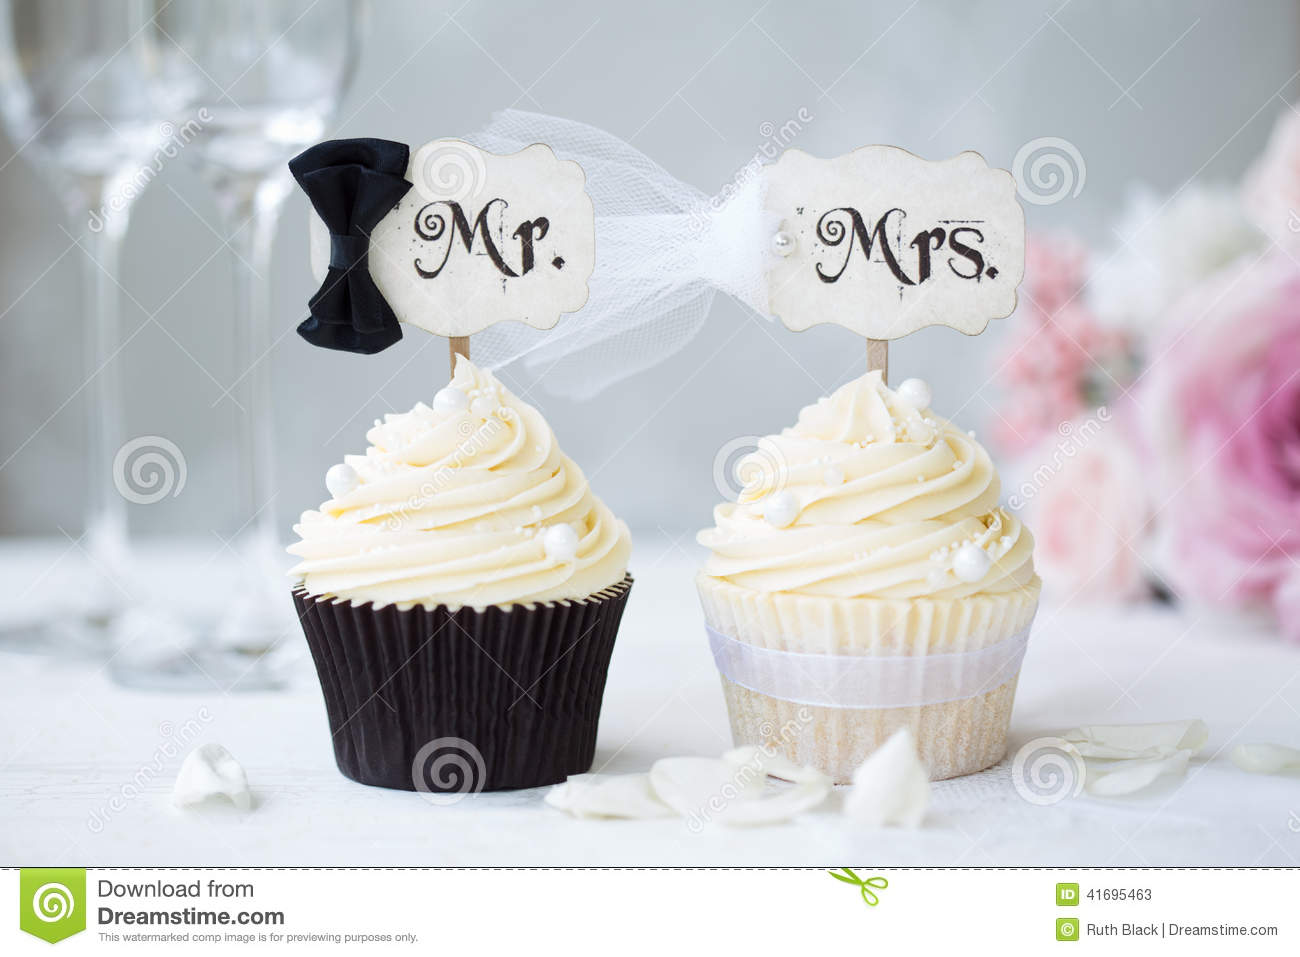 Cupcakes Stock Photos - Royalty Free Images - Dreamstime